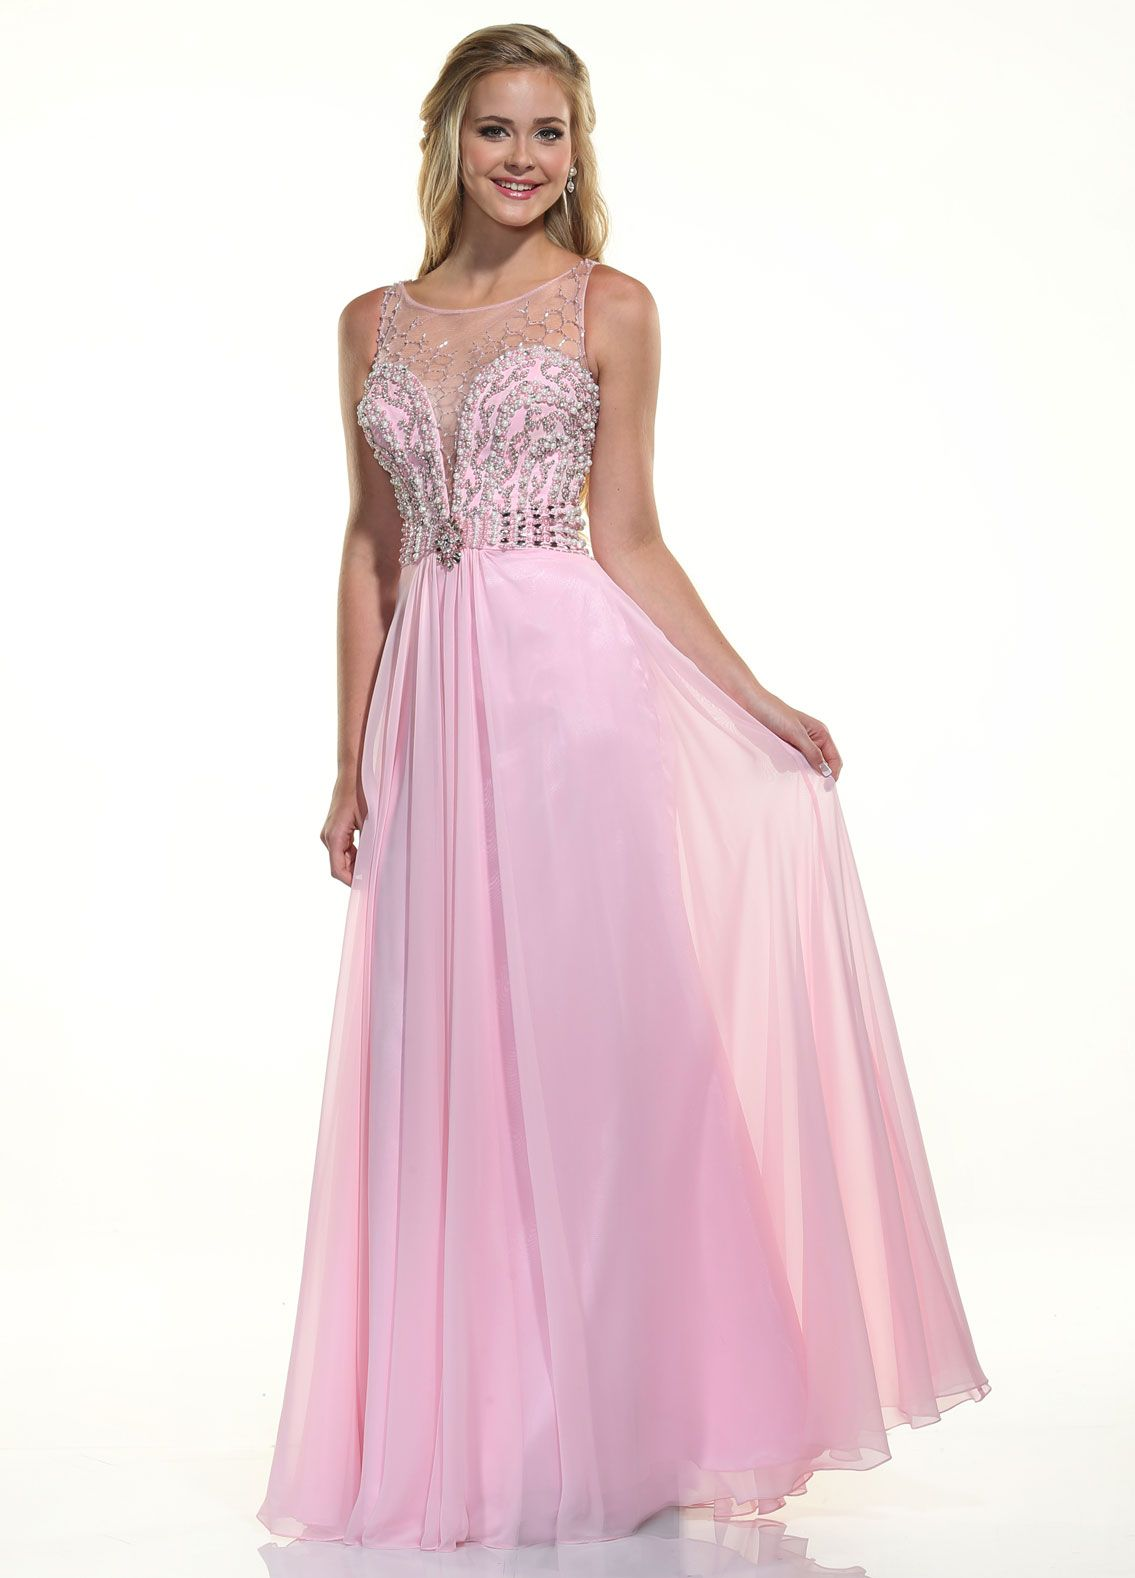 DE 35737 Pink size 6 | Xcite/ Xtreme/ Disney Enchanted gowns in ...